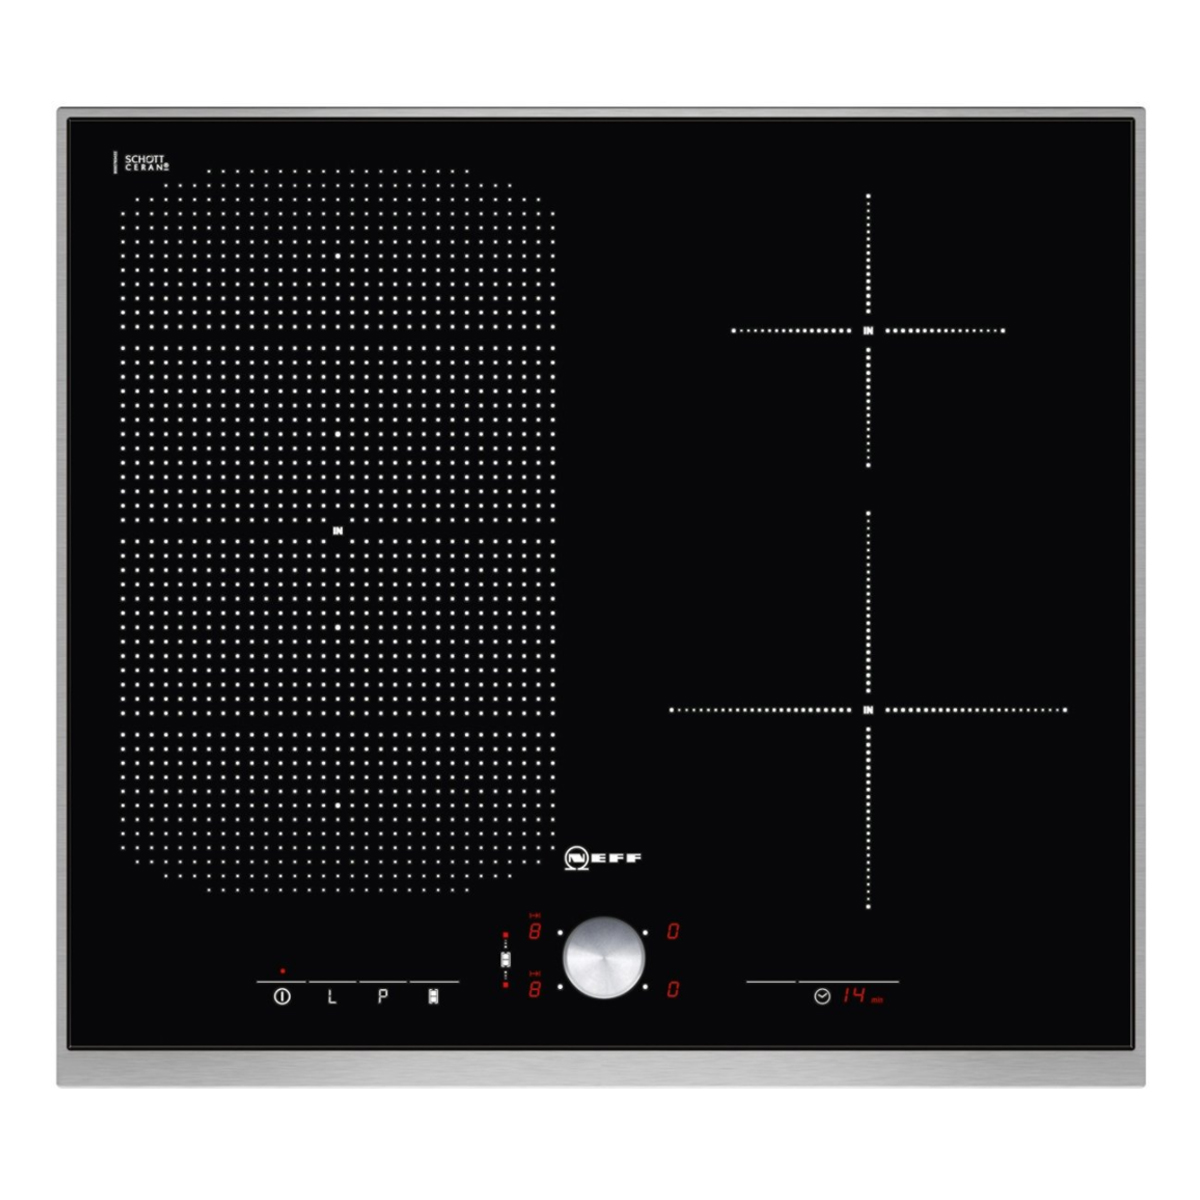 Neff T54T53N2 Induction Cooktop 66944